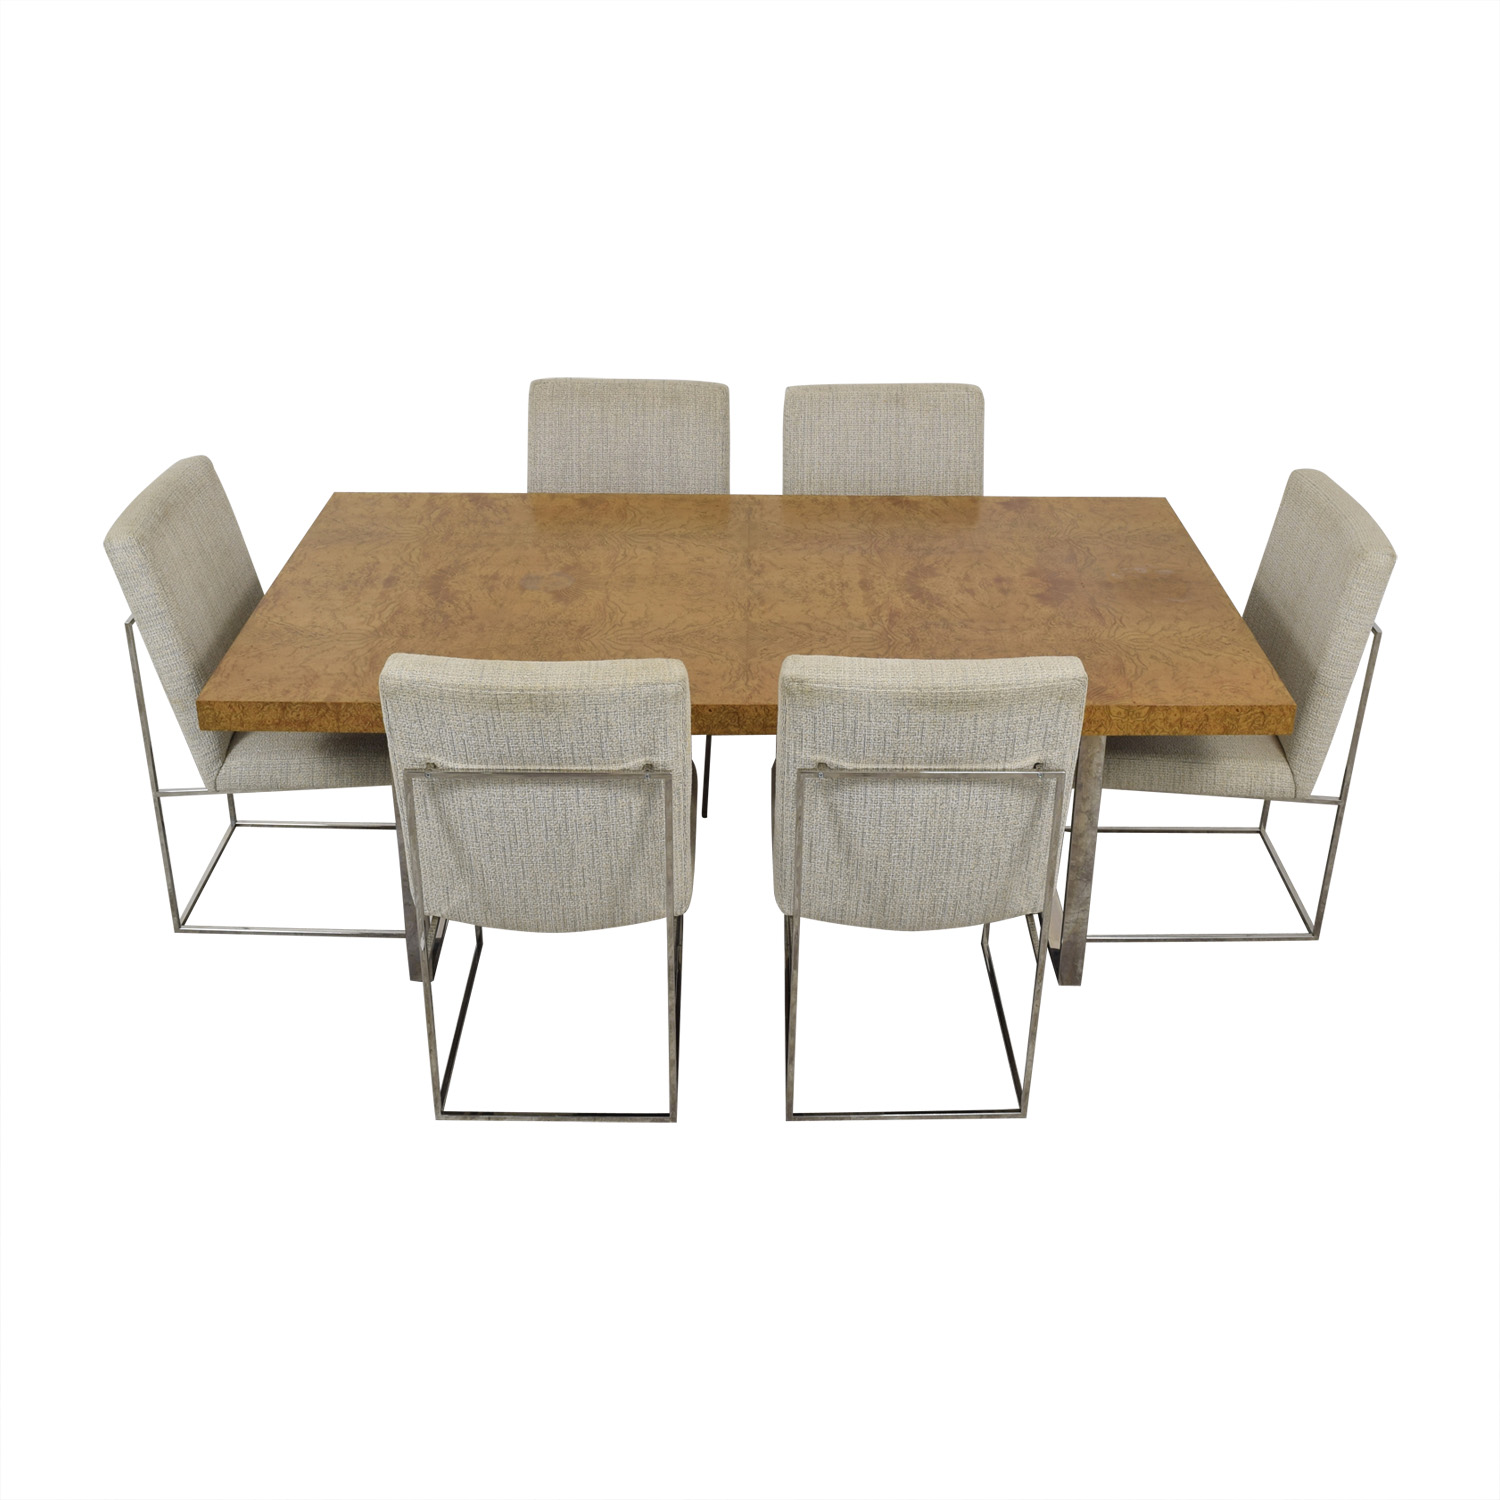 Thayer Coggin Thayer Coggin Burl Dining Set with Design Classic Dining Chair by Milo Baughman dimensions